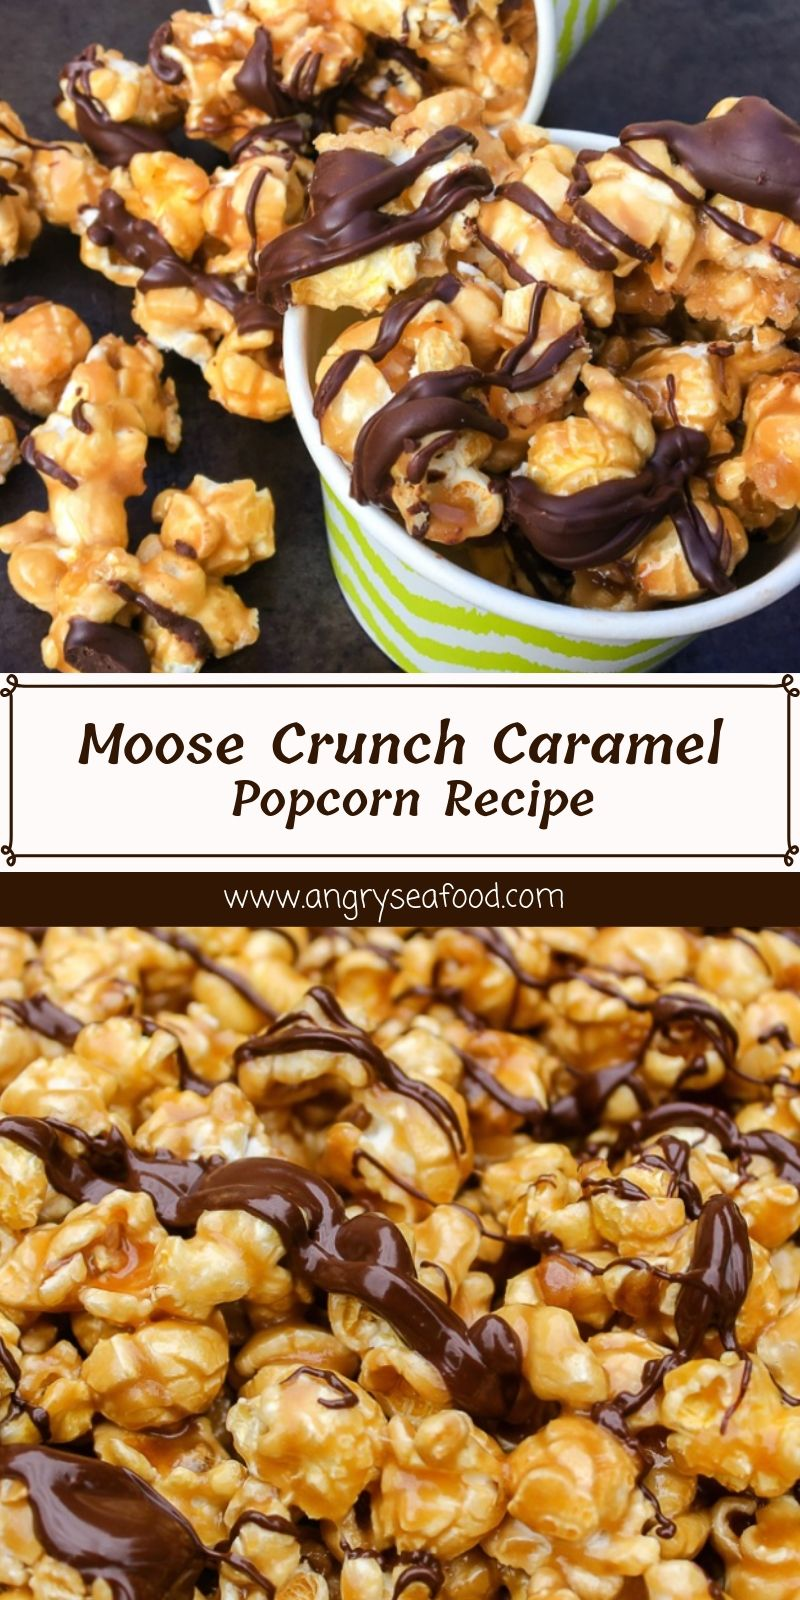 Moose Crunch Caramel Popcorn Recipe